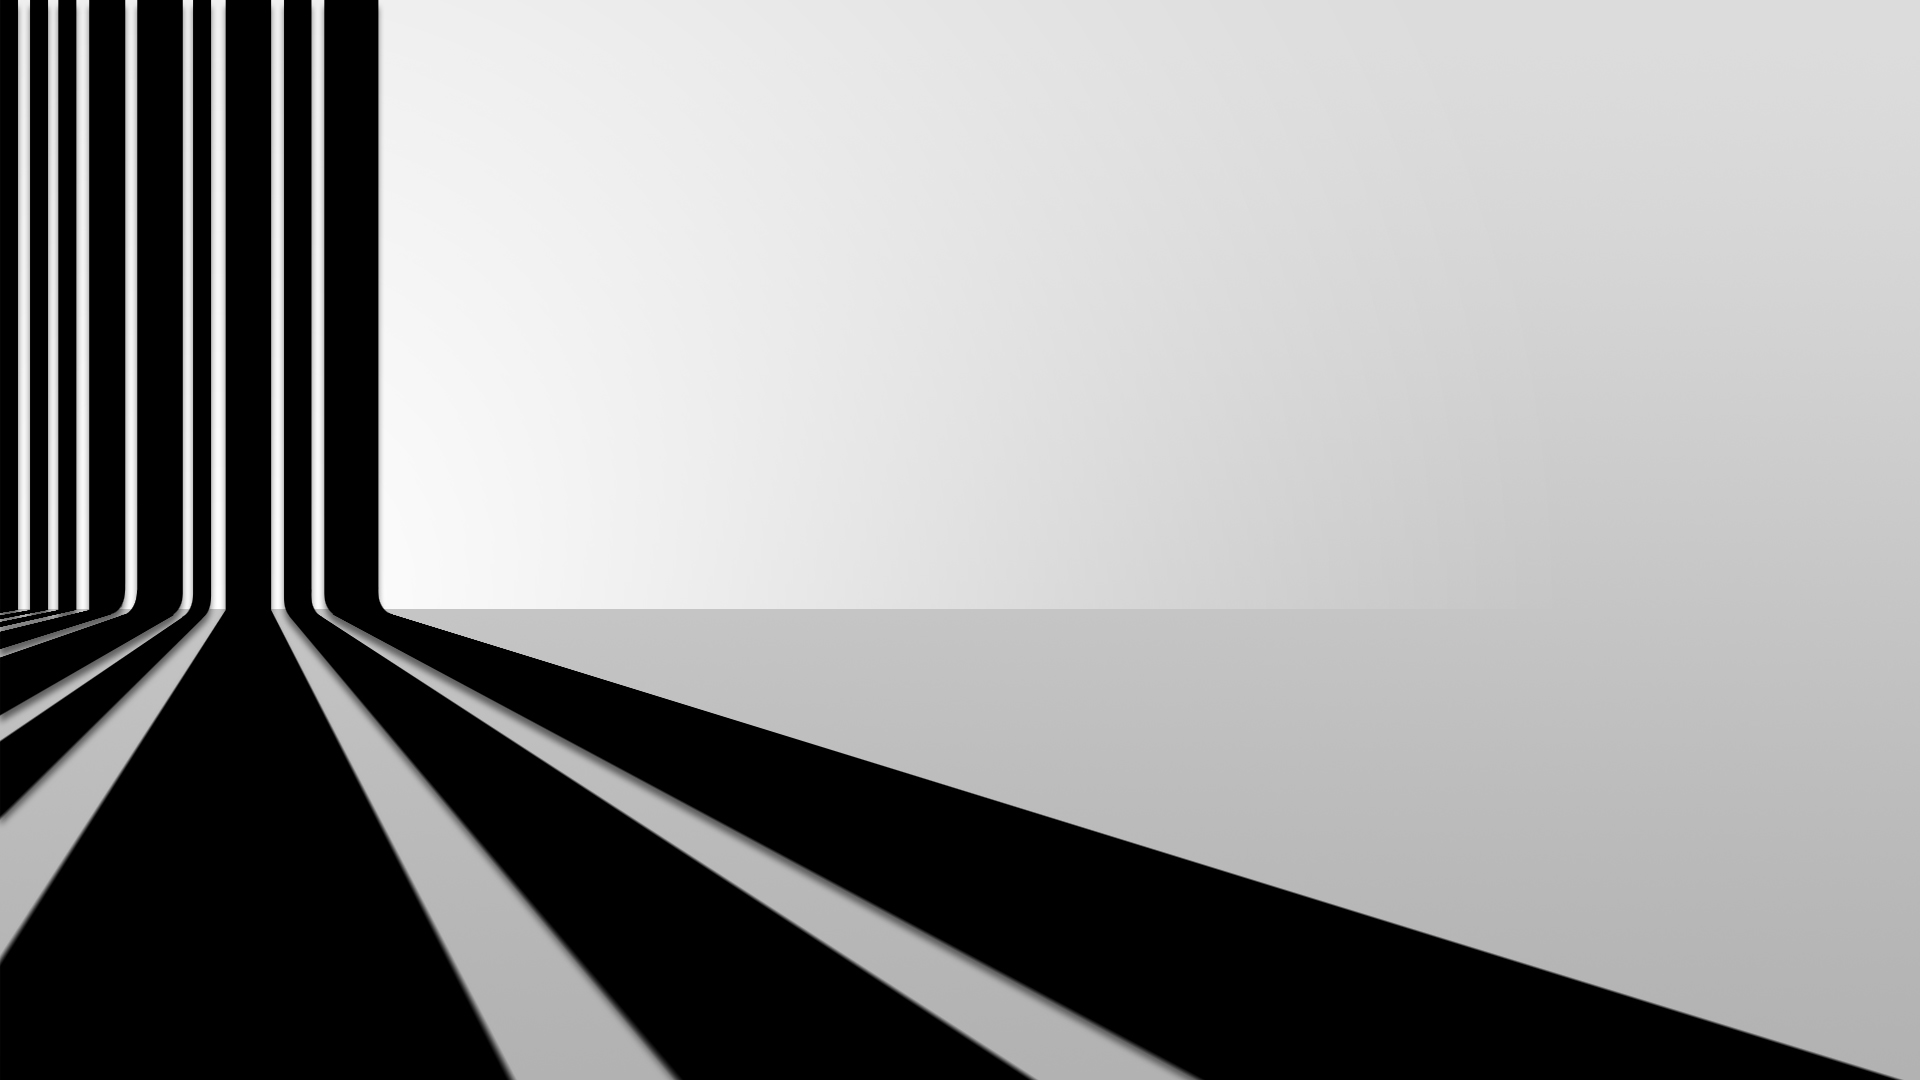 white and black patterns  wallpaper